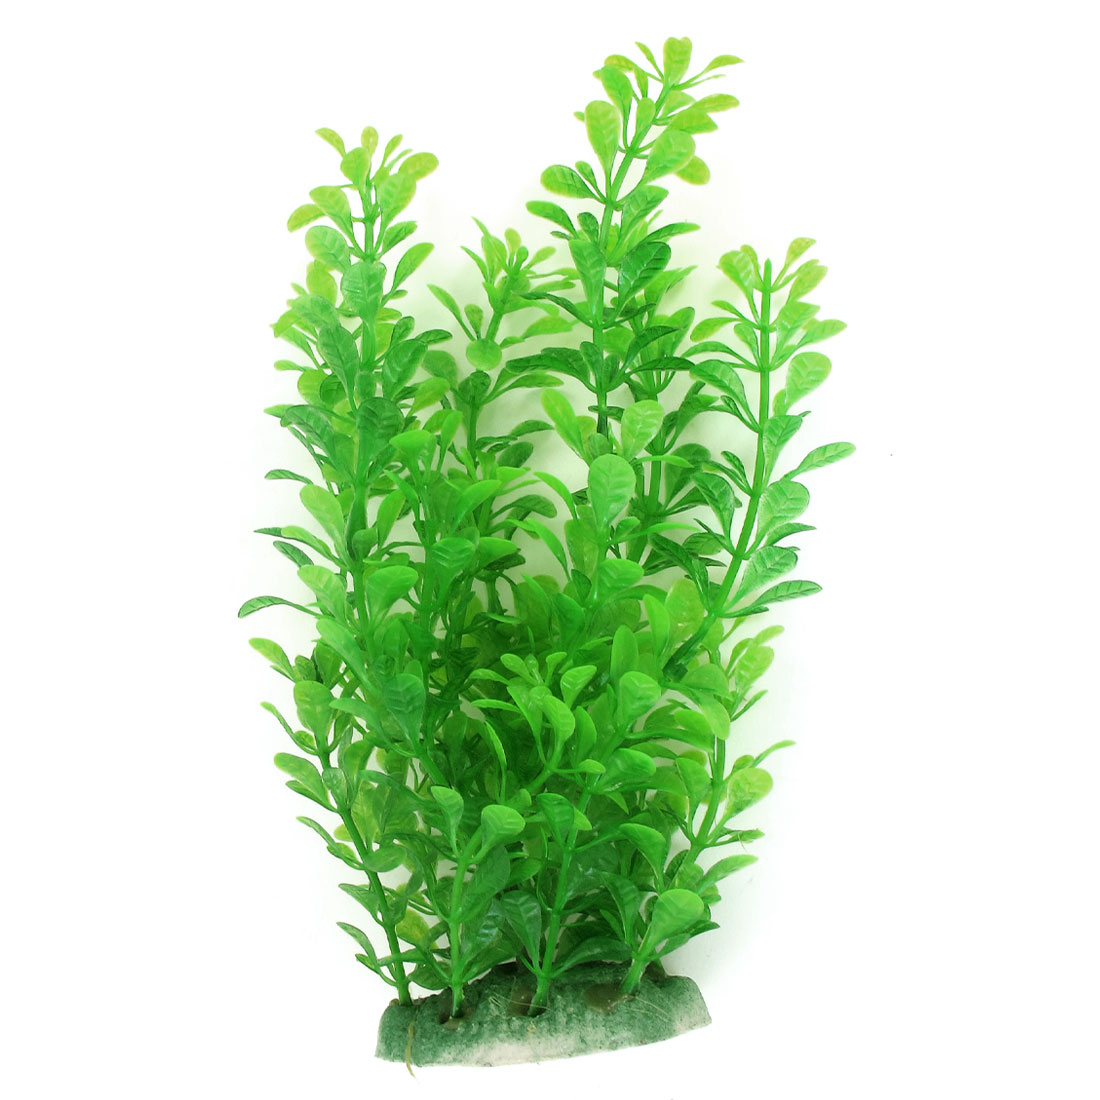 "Emulational Aquarium Grass Water Plant Adorn 7.5"" Height for Fish Tank"